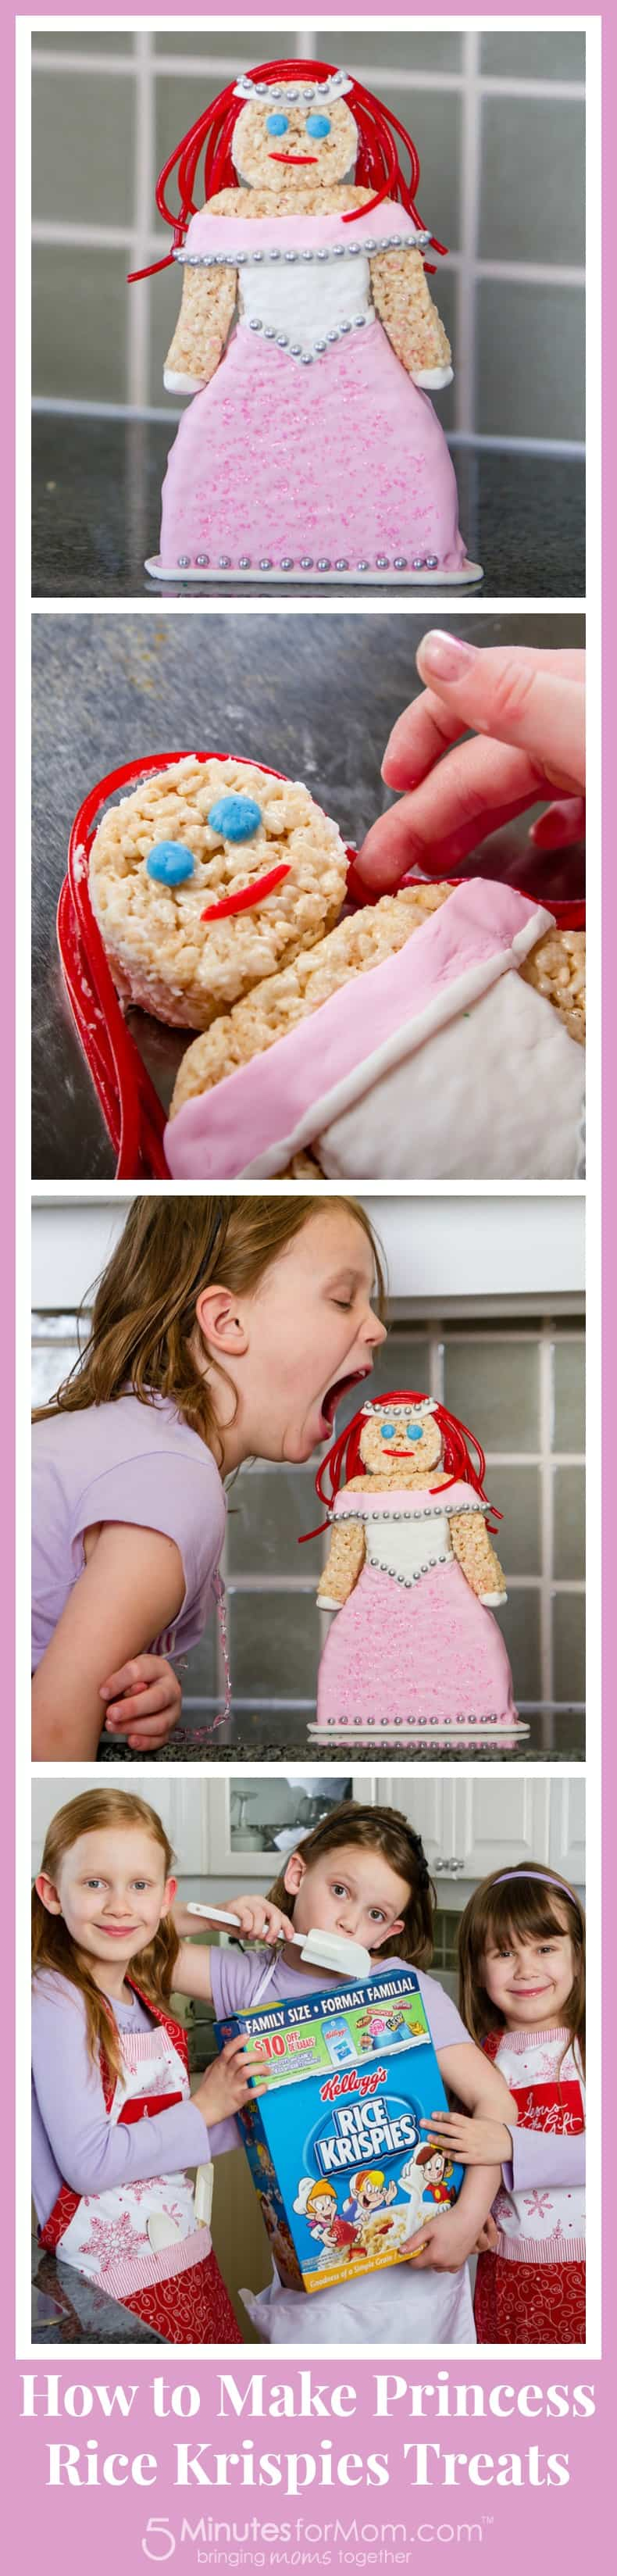 Princess Rice Krispies Treats